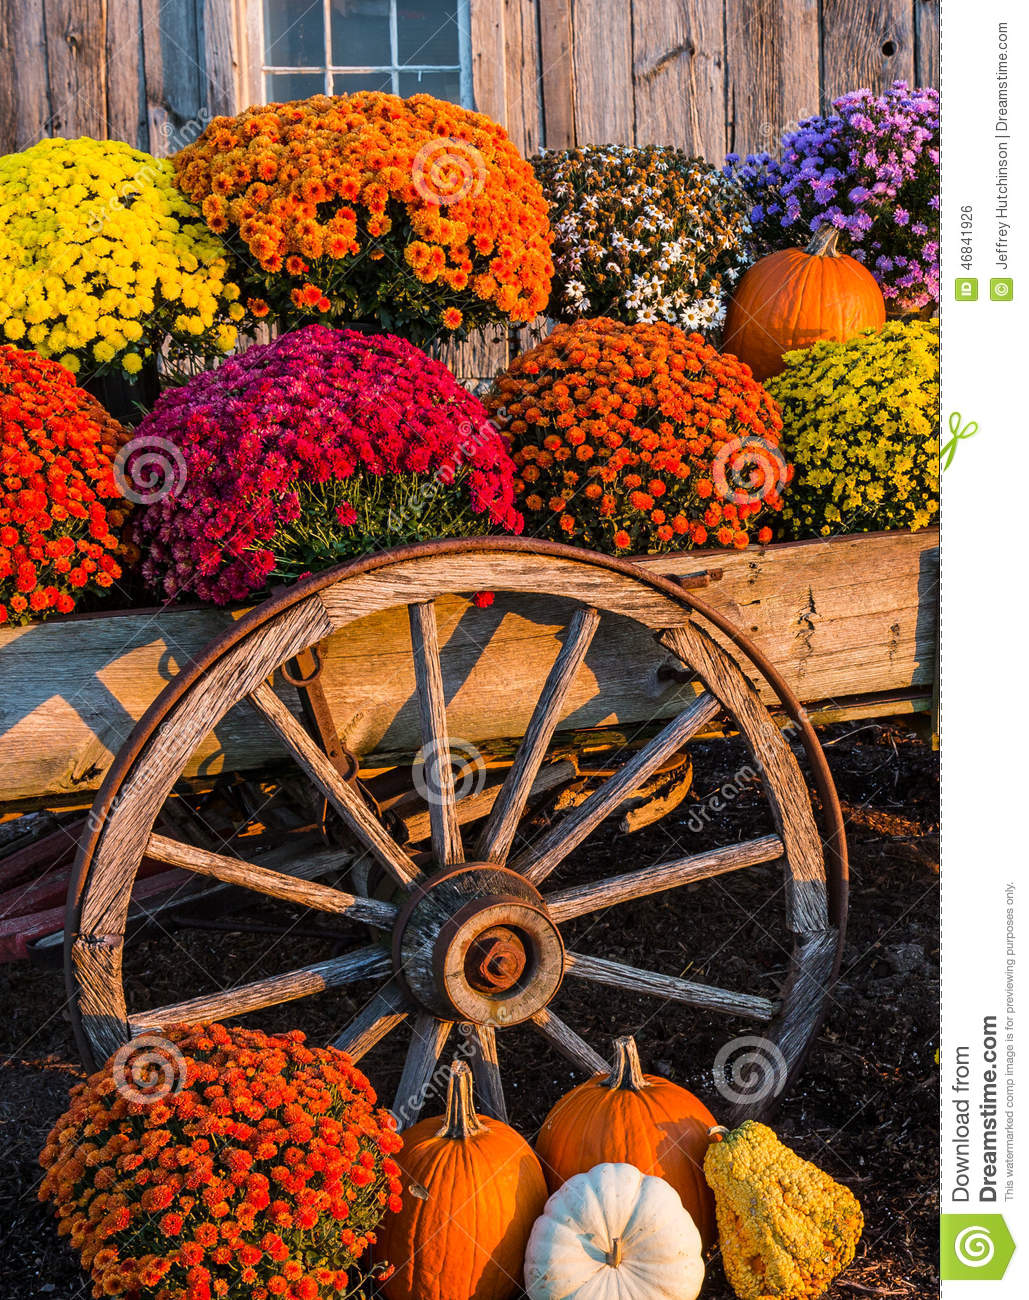 Fall scene with colorful mums and pumpkins in old wagon against a barn